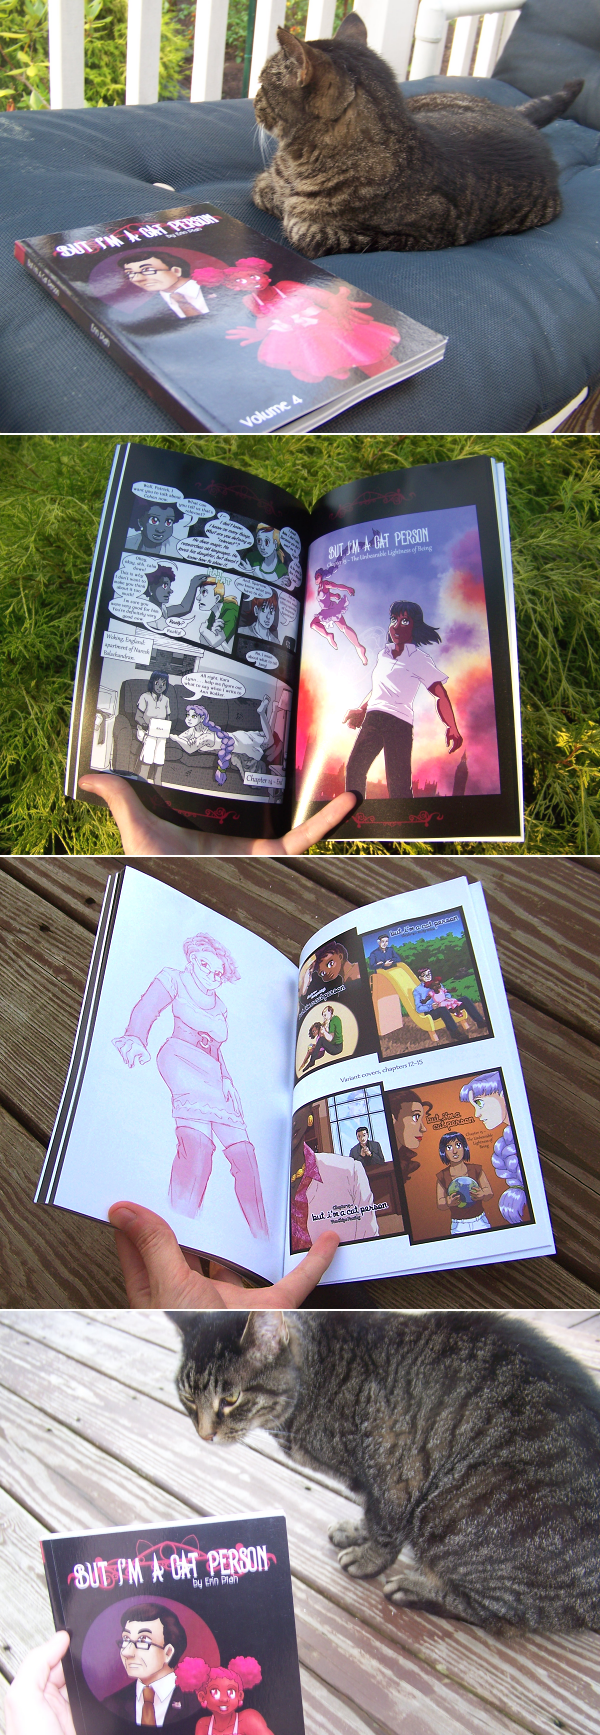 But I'm A Cat Person volume 4 is finally in print!